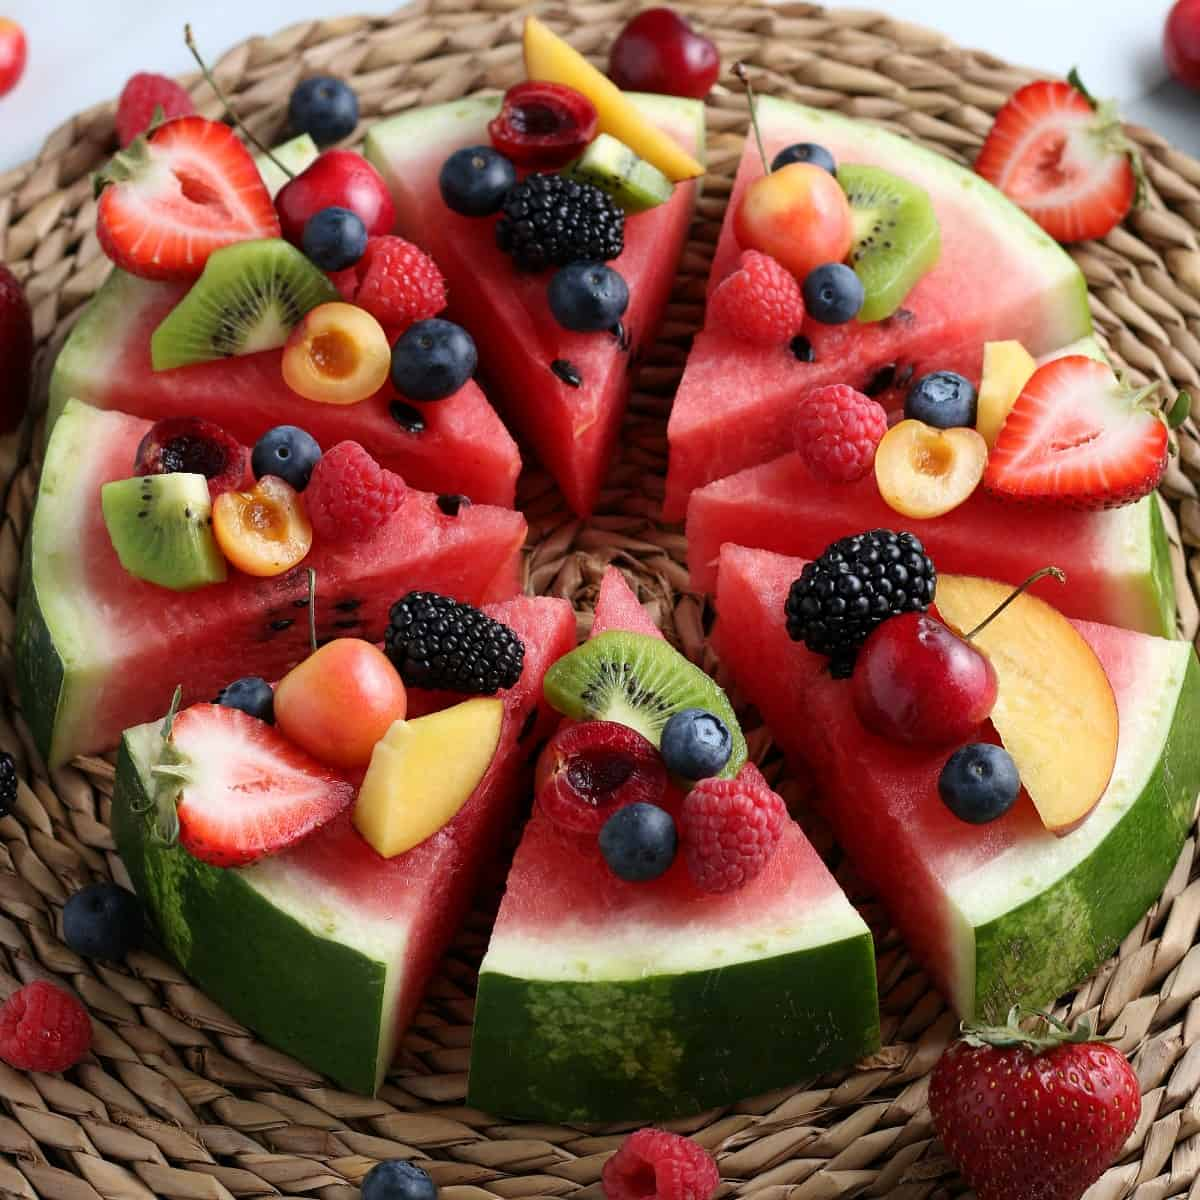 Angled thick slice of watermelon covered with fresh fruit pieces and then sliced into wedges for serving.